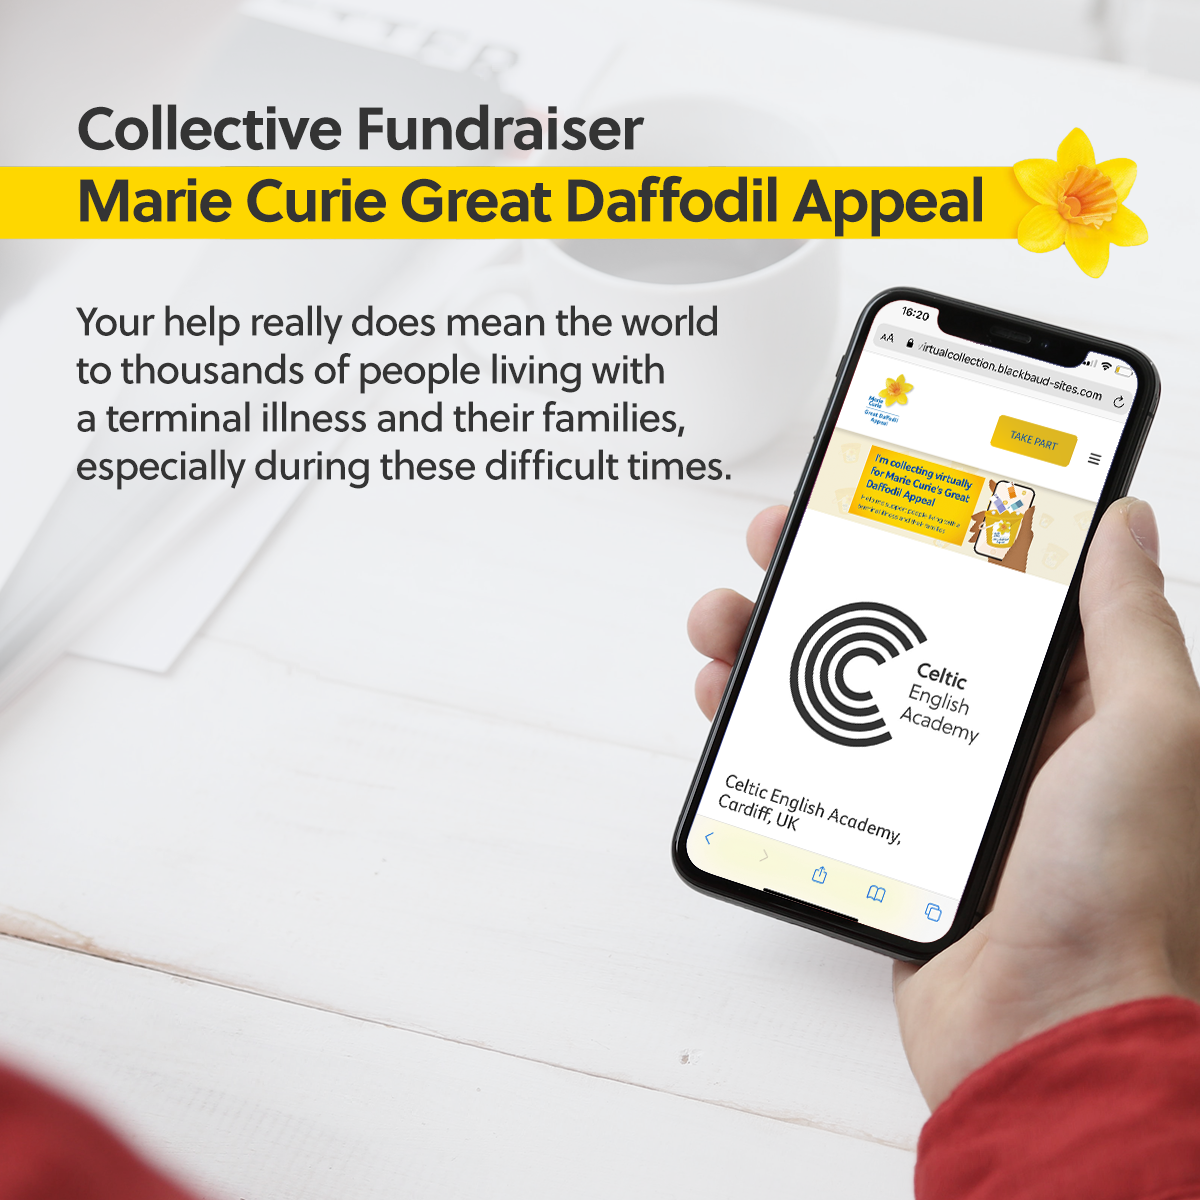 Marie Curie Collective Fundraiser Daffodil Appeal